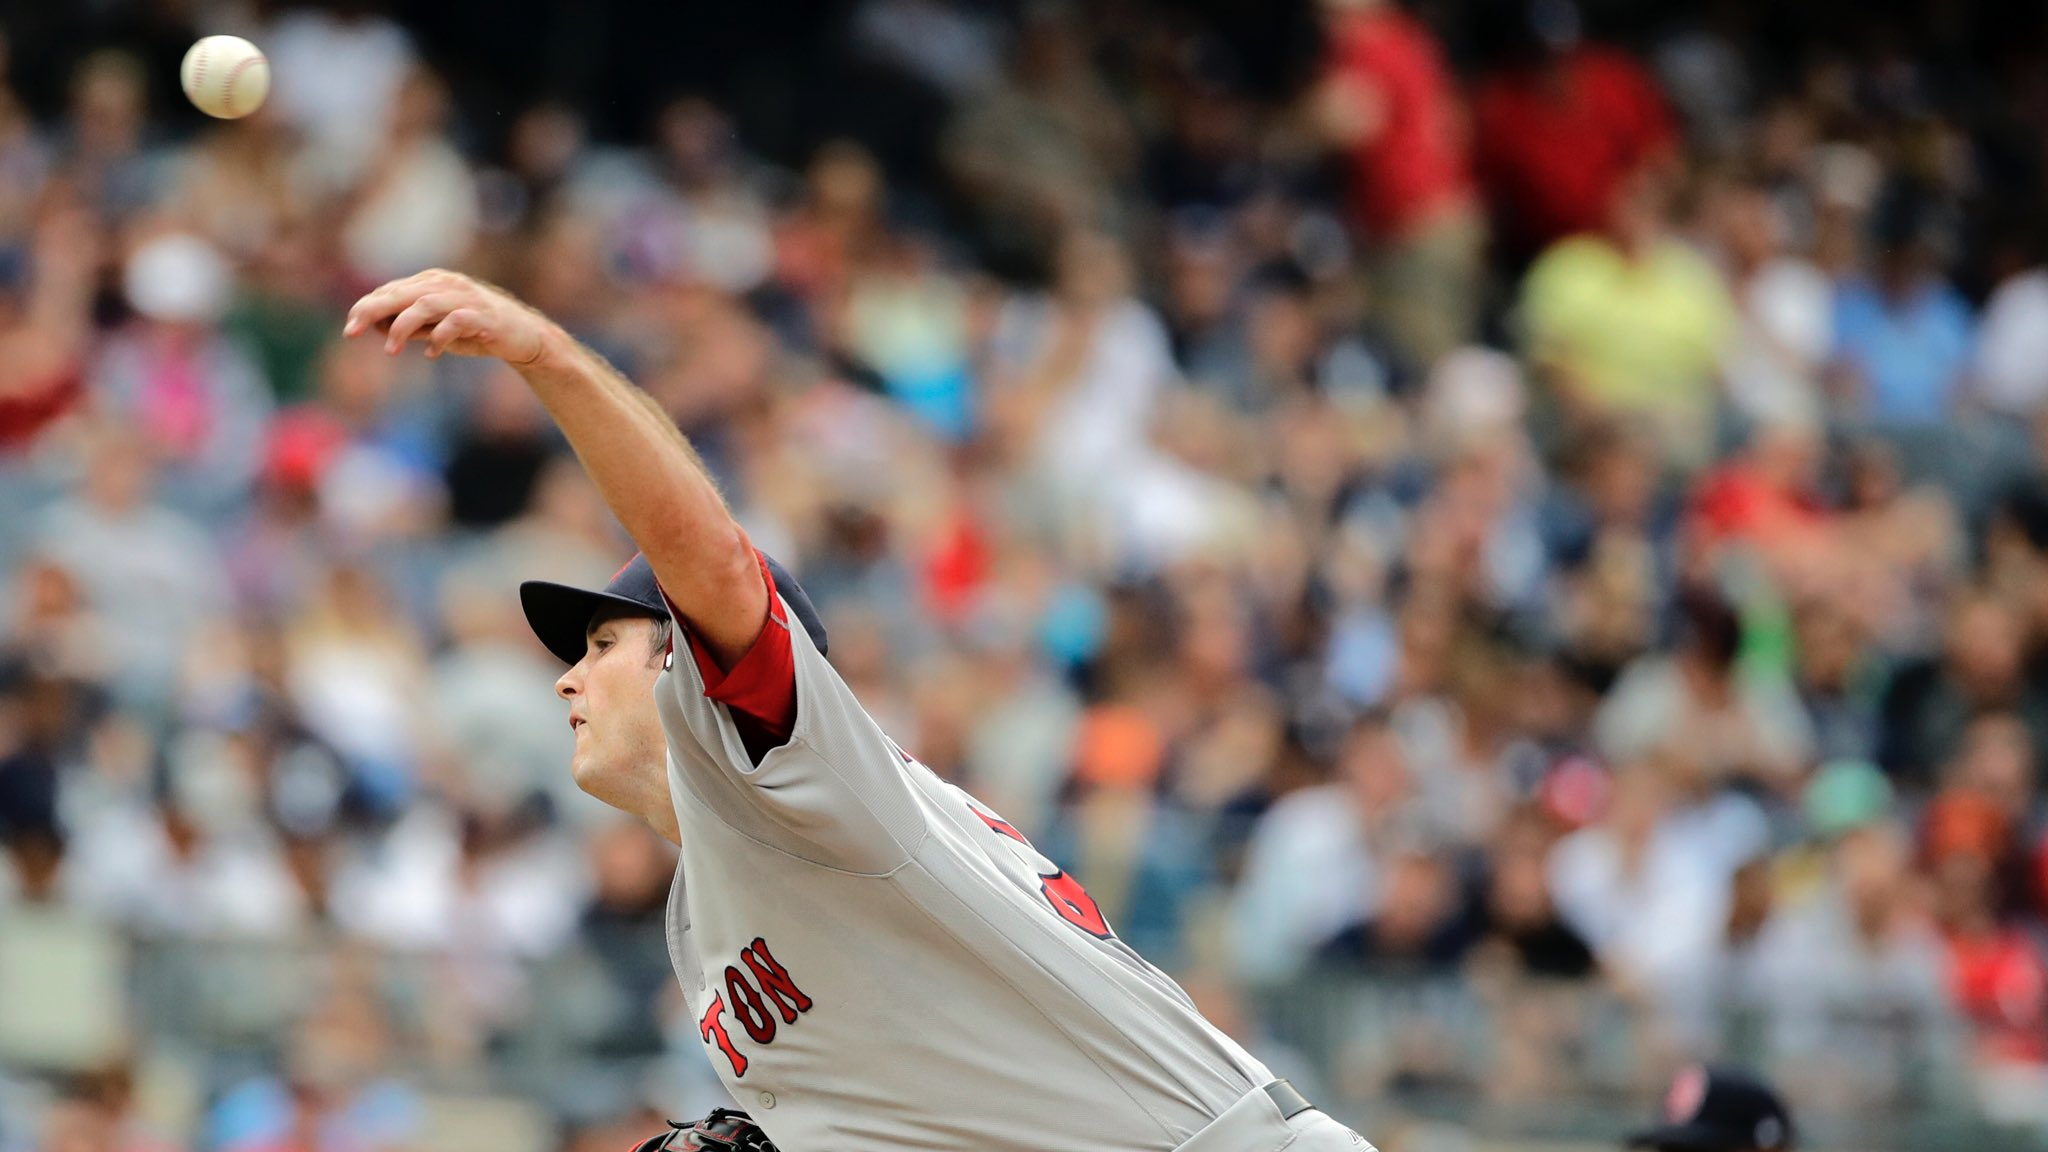 .@DrewPomeranz's Day:  6.2 IP, 7 H, 3 R, 2 BB, 5 SO �� https://t.co/muGCoqGU7s